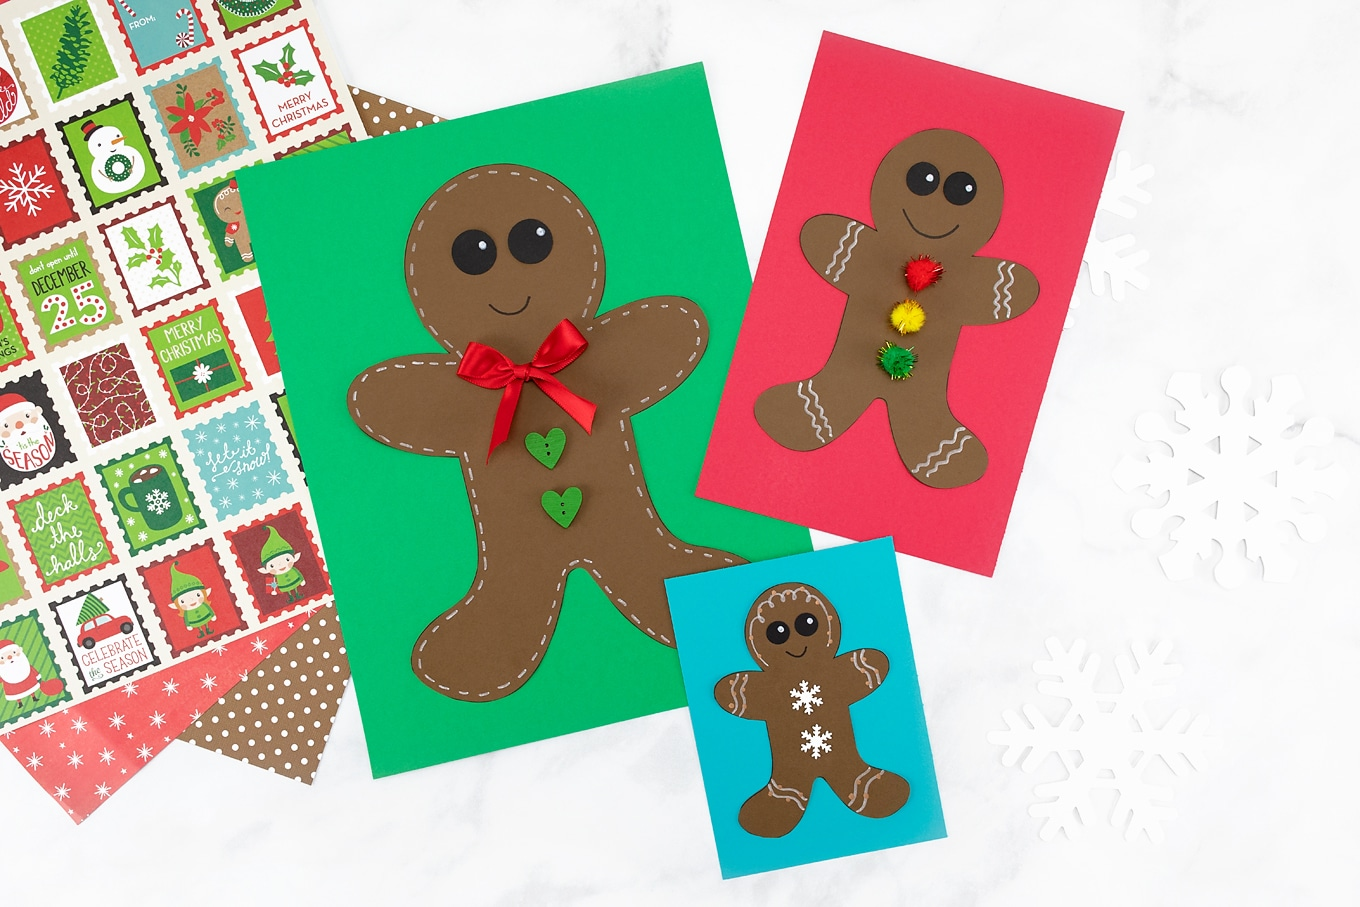 Gingerbread Man Craft for Kids